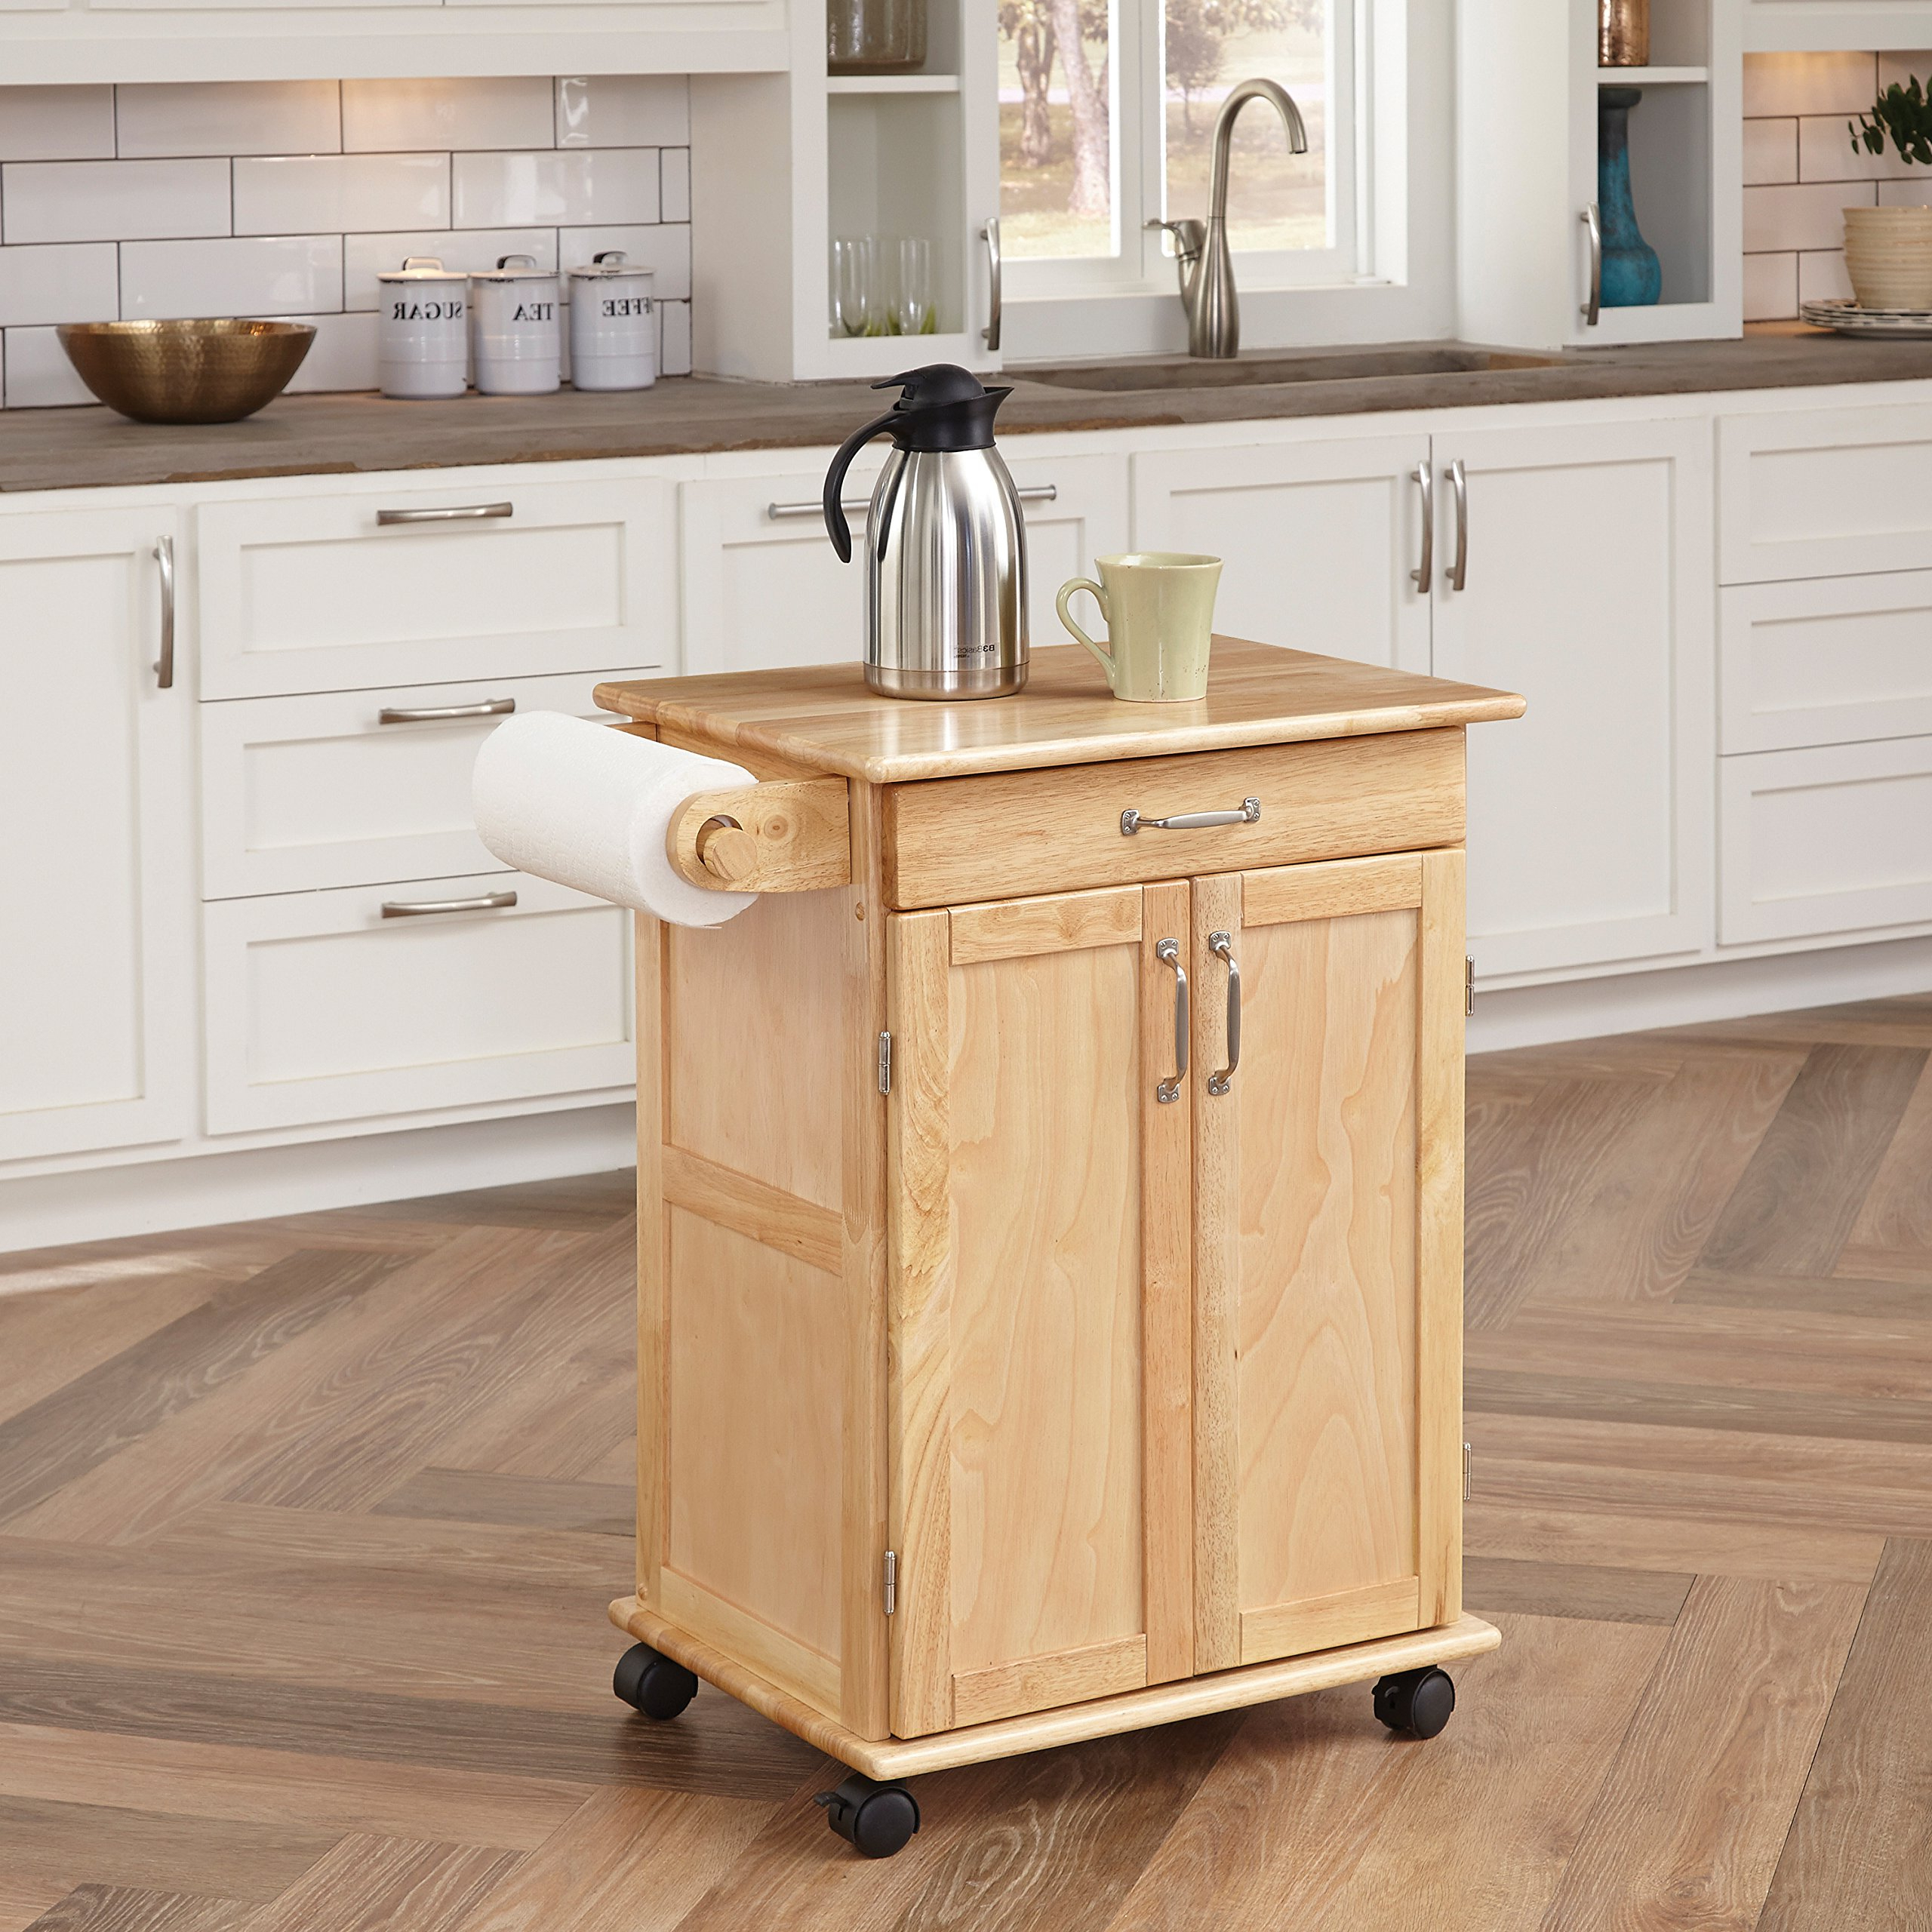 Elworth Kitchen Island Pertaining To Most Up To Date Best Rated In Kitchen Islands & Carts & Helpful Customer (View 20 of 25)